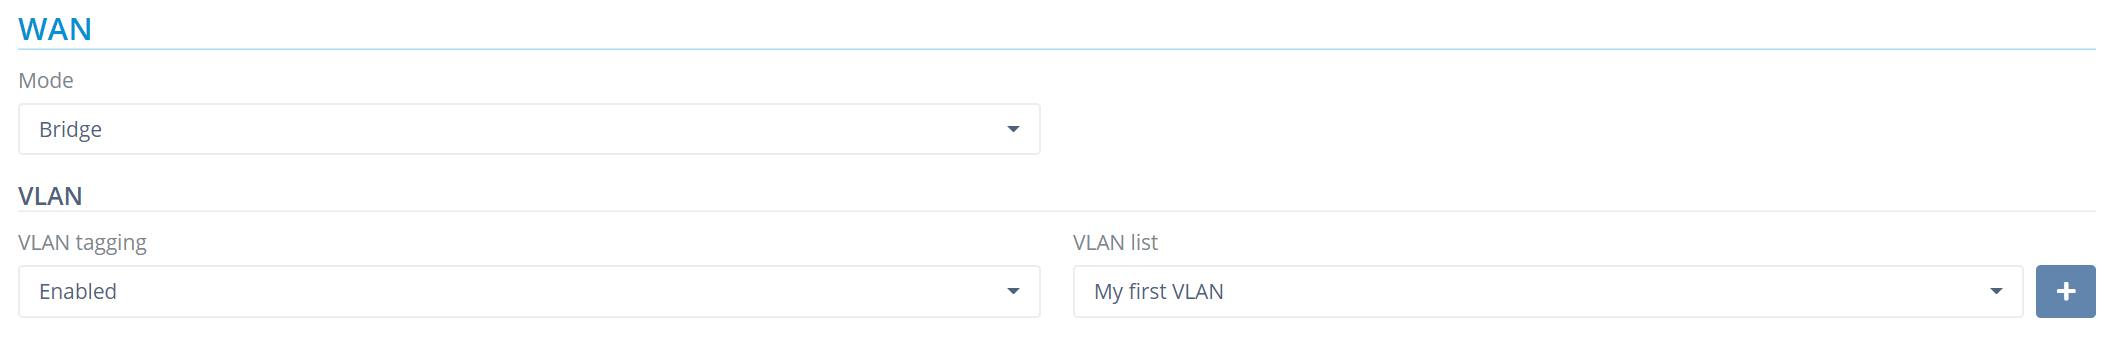 bridge-vlan-with-ssid.PNG